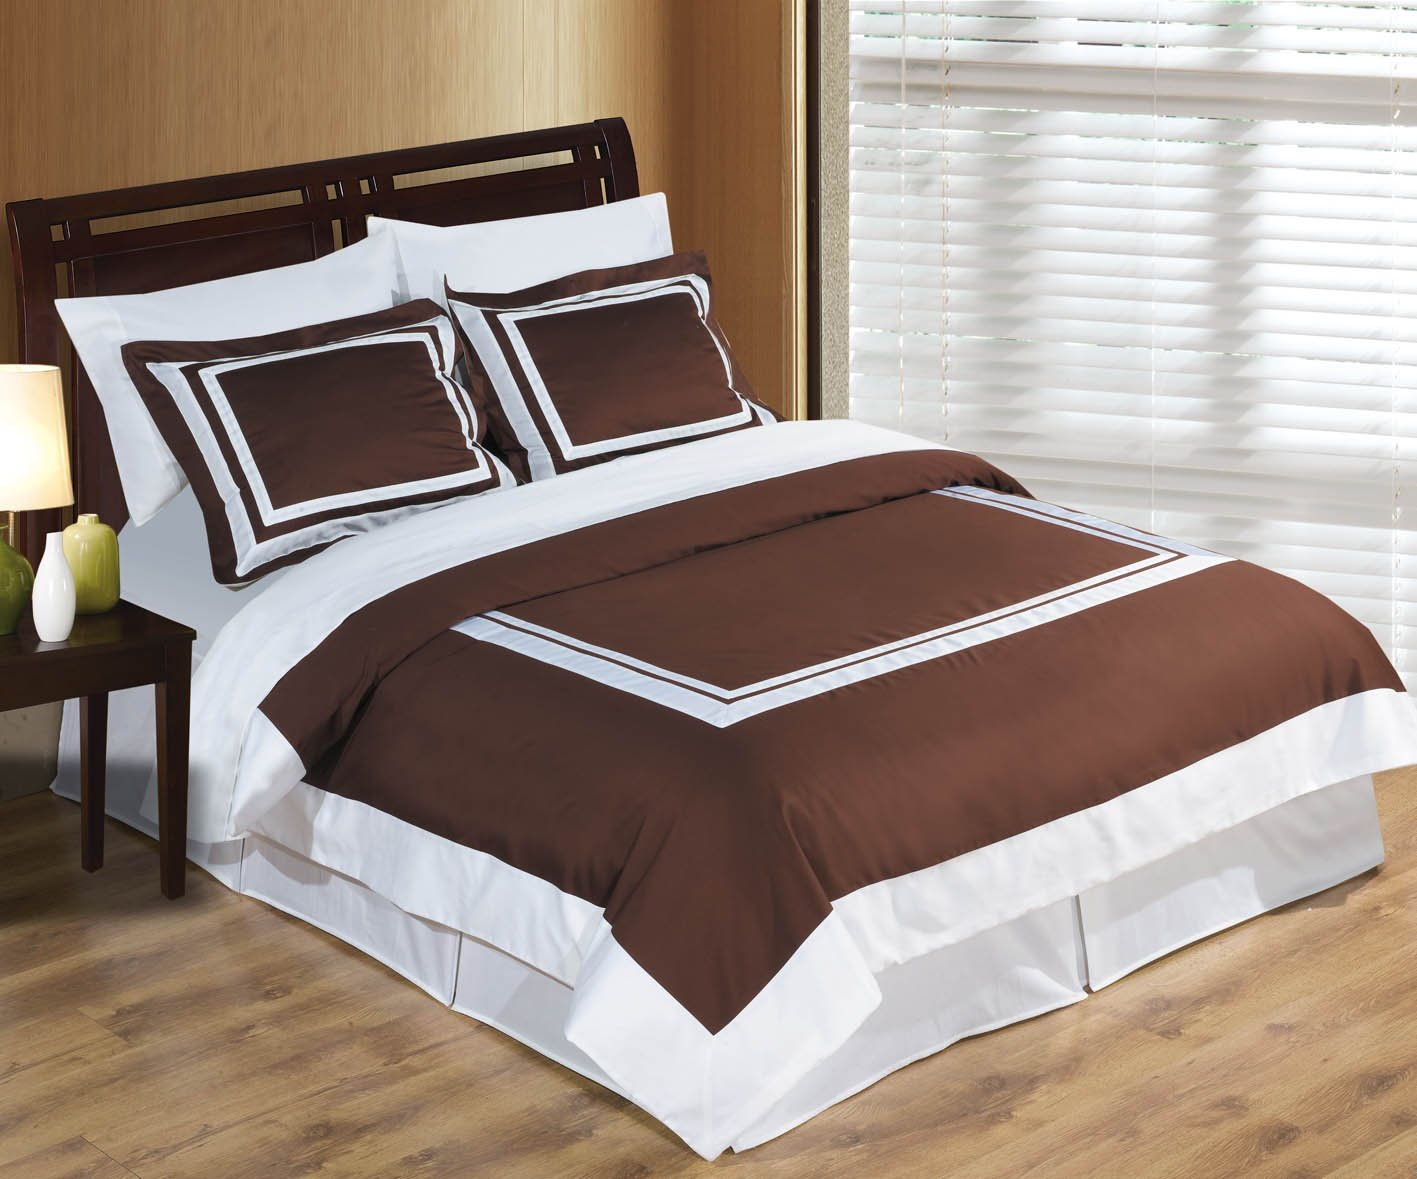 sheetsnthings 4PC Full/Queen size Chocolate with White Hotel bedding set including 3pc duvet cover set+ 1 pc Down Alternative Comforter at Sears.com